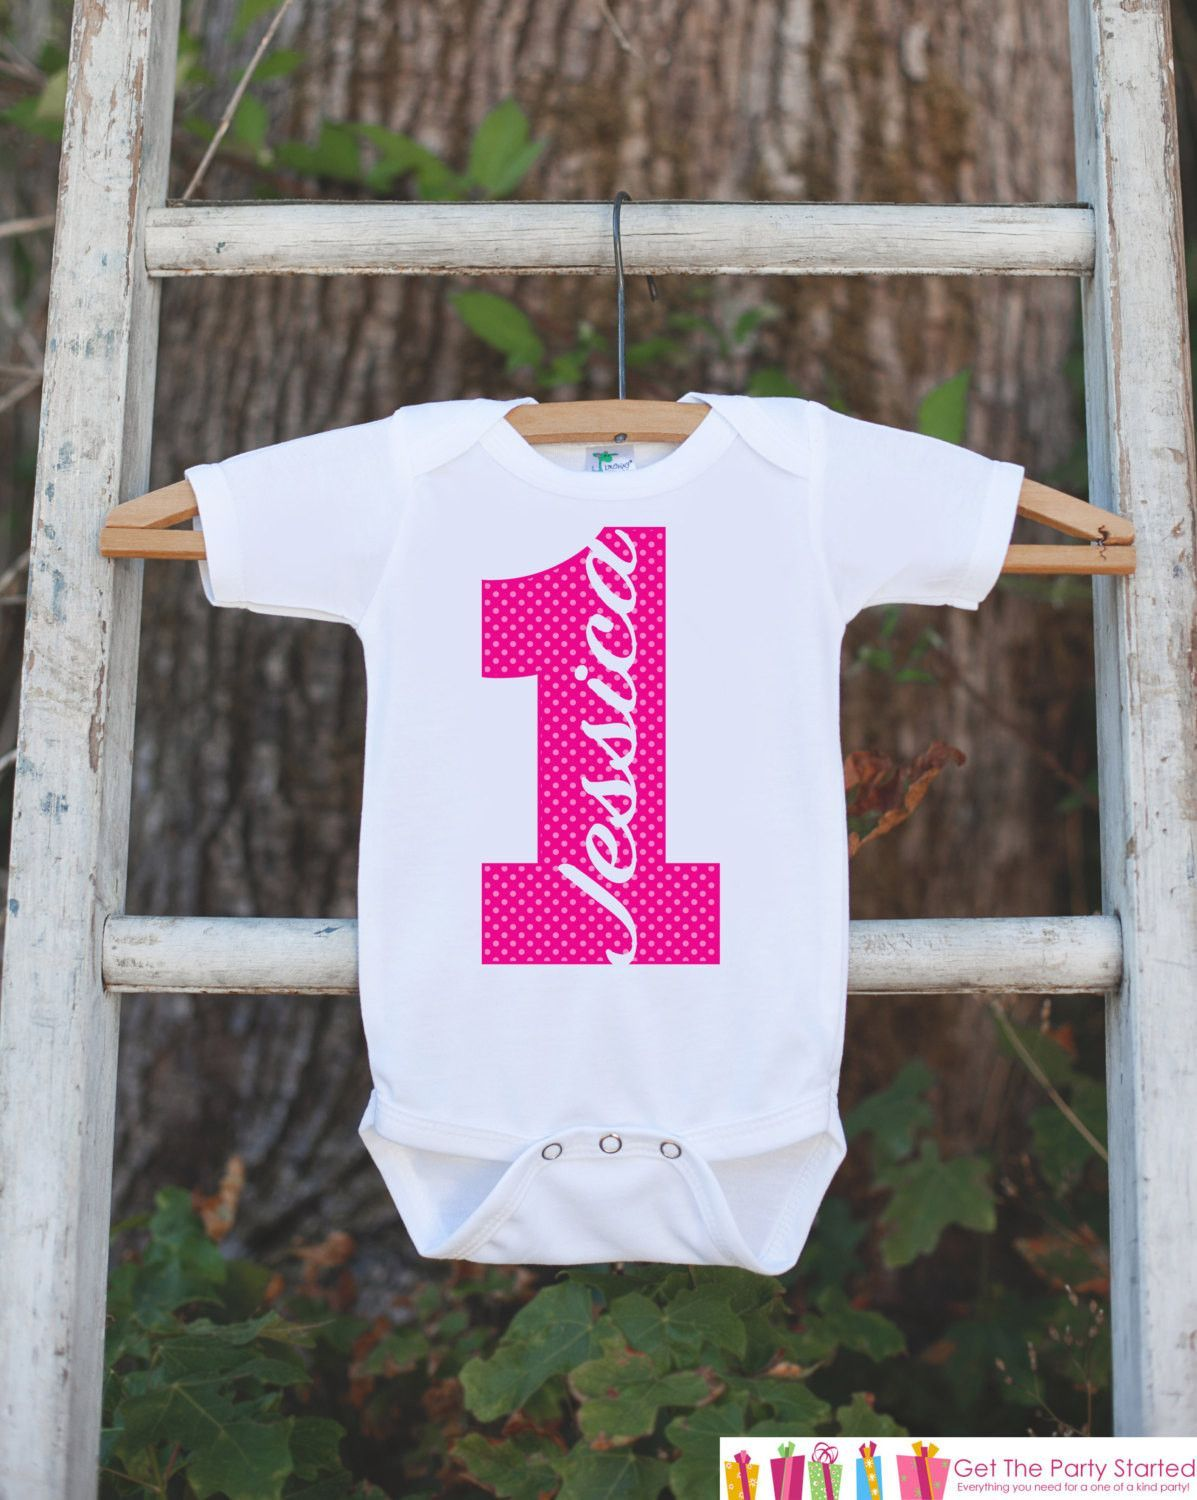 22ddf010 First Birthday Outfit - Personalized Onepiece For Girl's 1st Birthday Party  - Girls Birthday Shirt - Hot Pink 1 First Birthday With Name